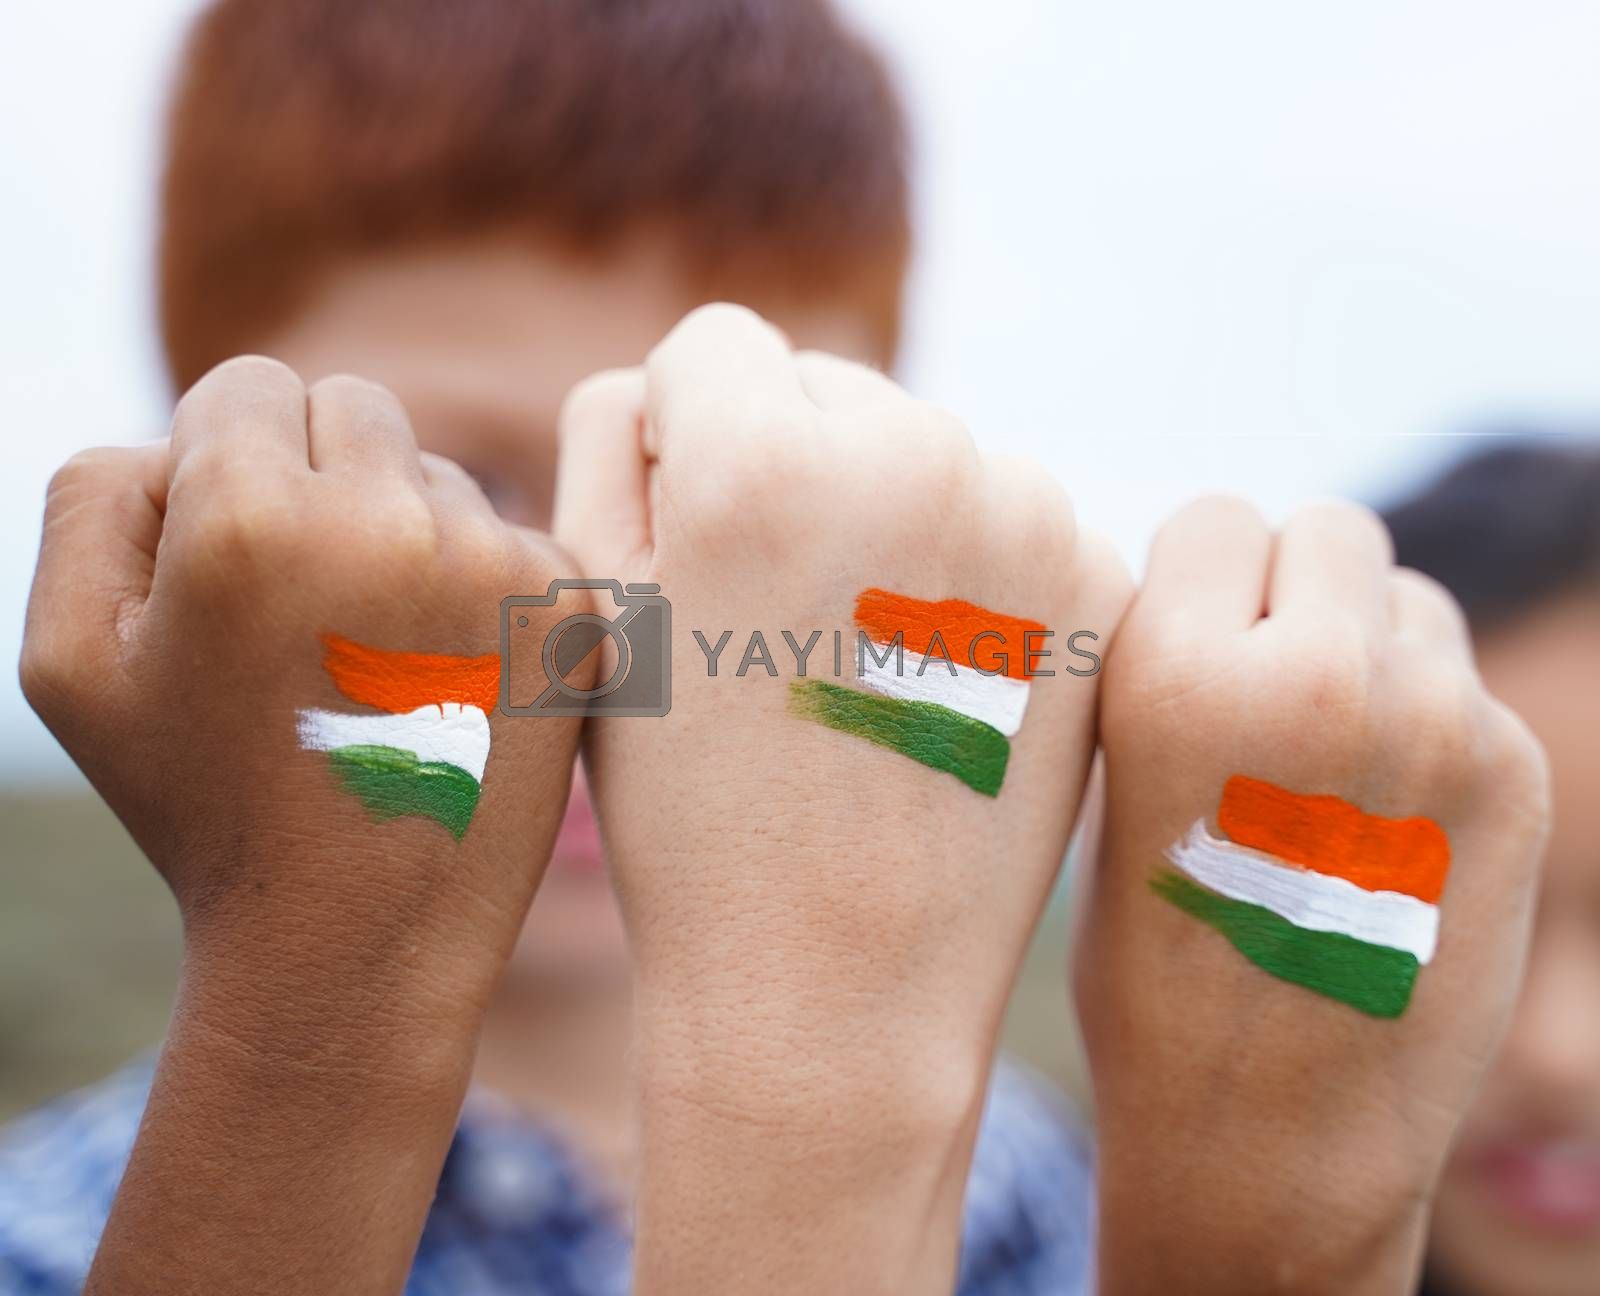 Kids fist hands painted with Indian falg during independence day or republic day celebration - concept showing of solidarity, raised fist of a protesters or patriotism.